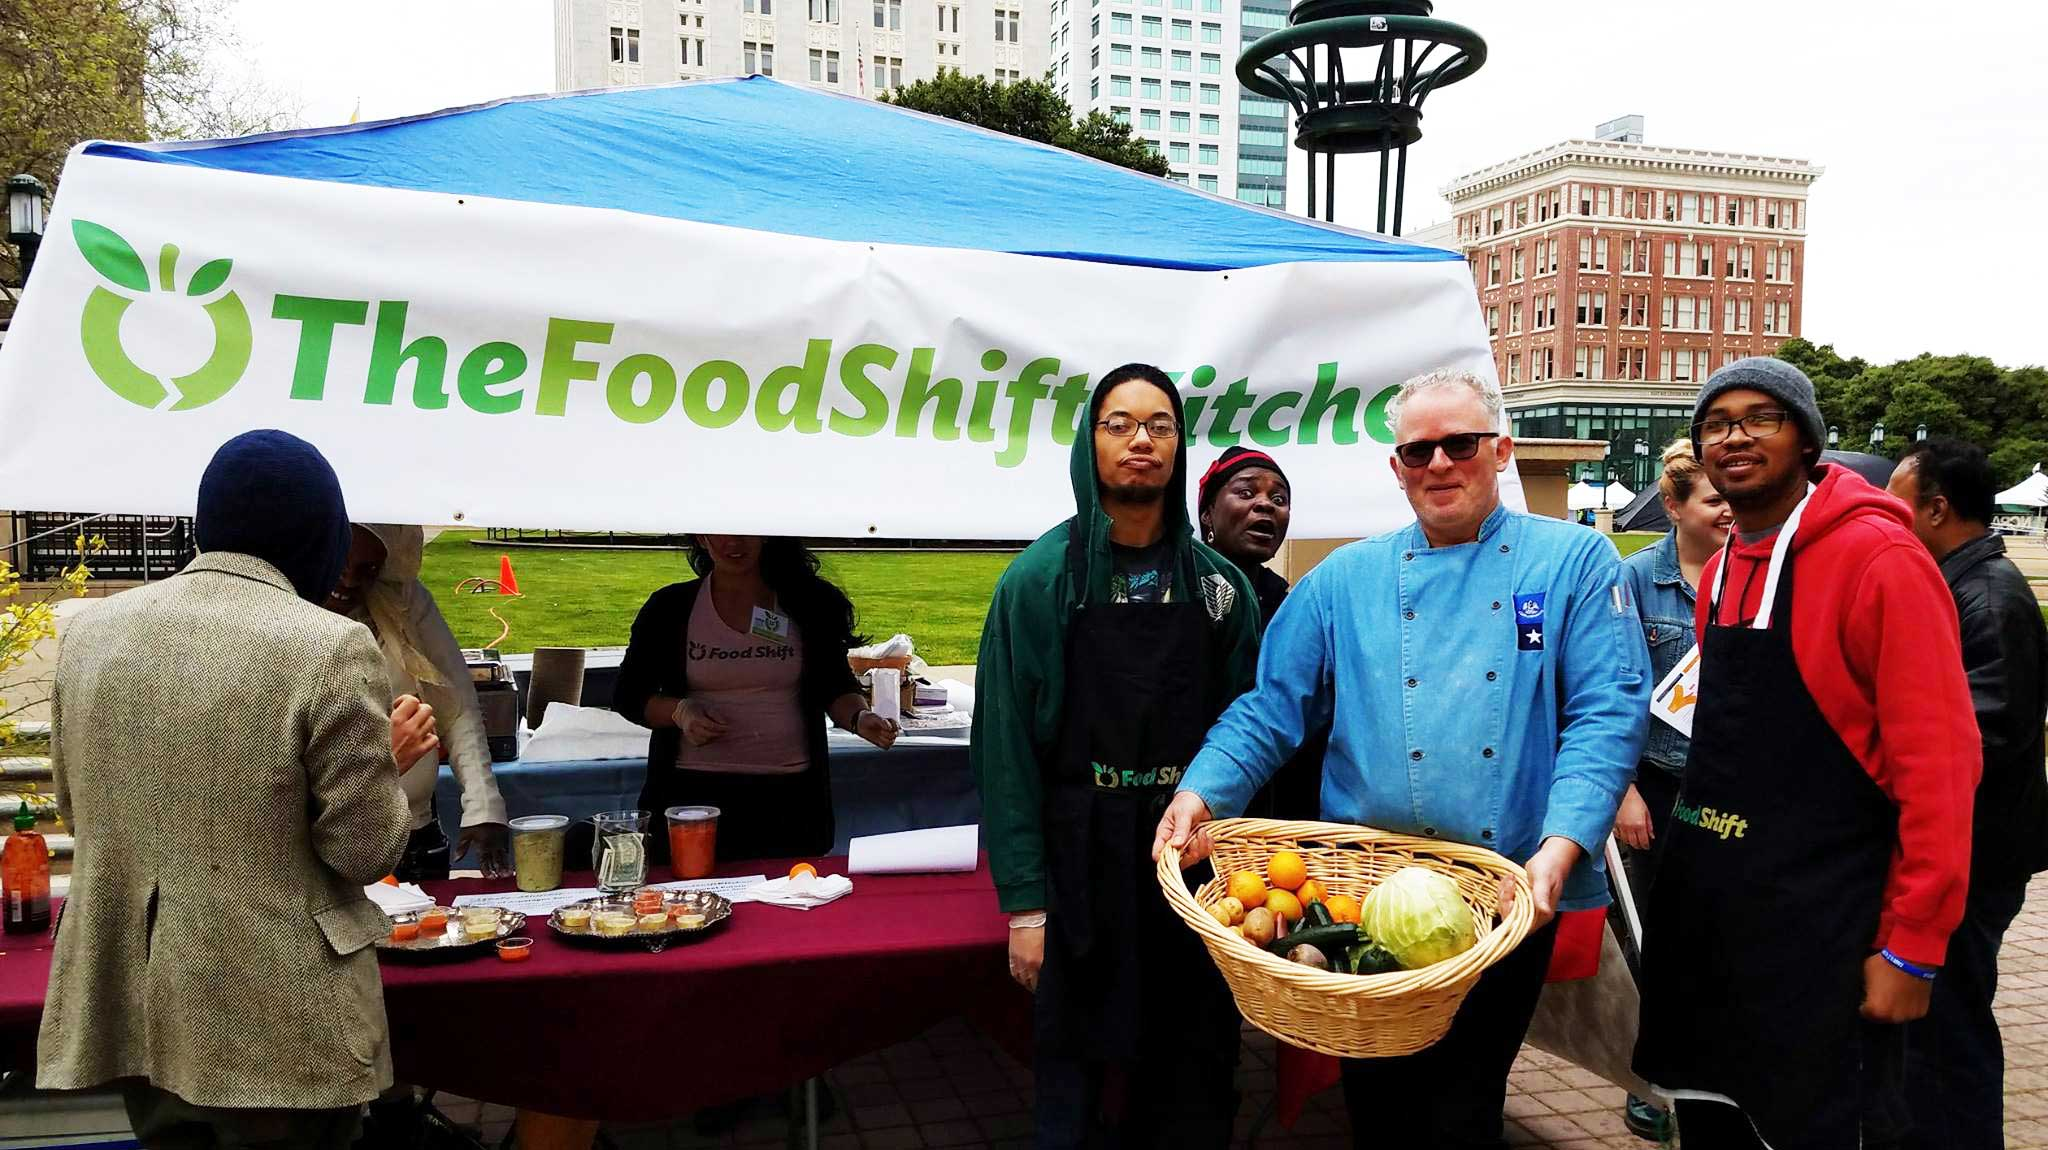 Food Shift Team with Founder and Executive Direcotr Dana Frasz (far left). Photo Courtesy of: Food Shift